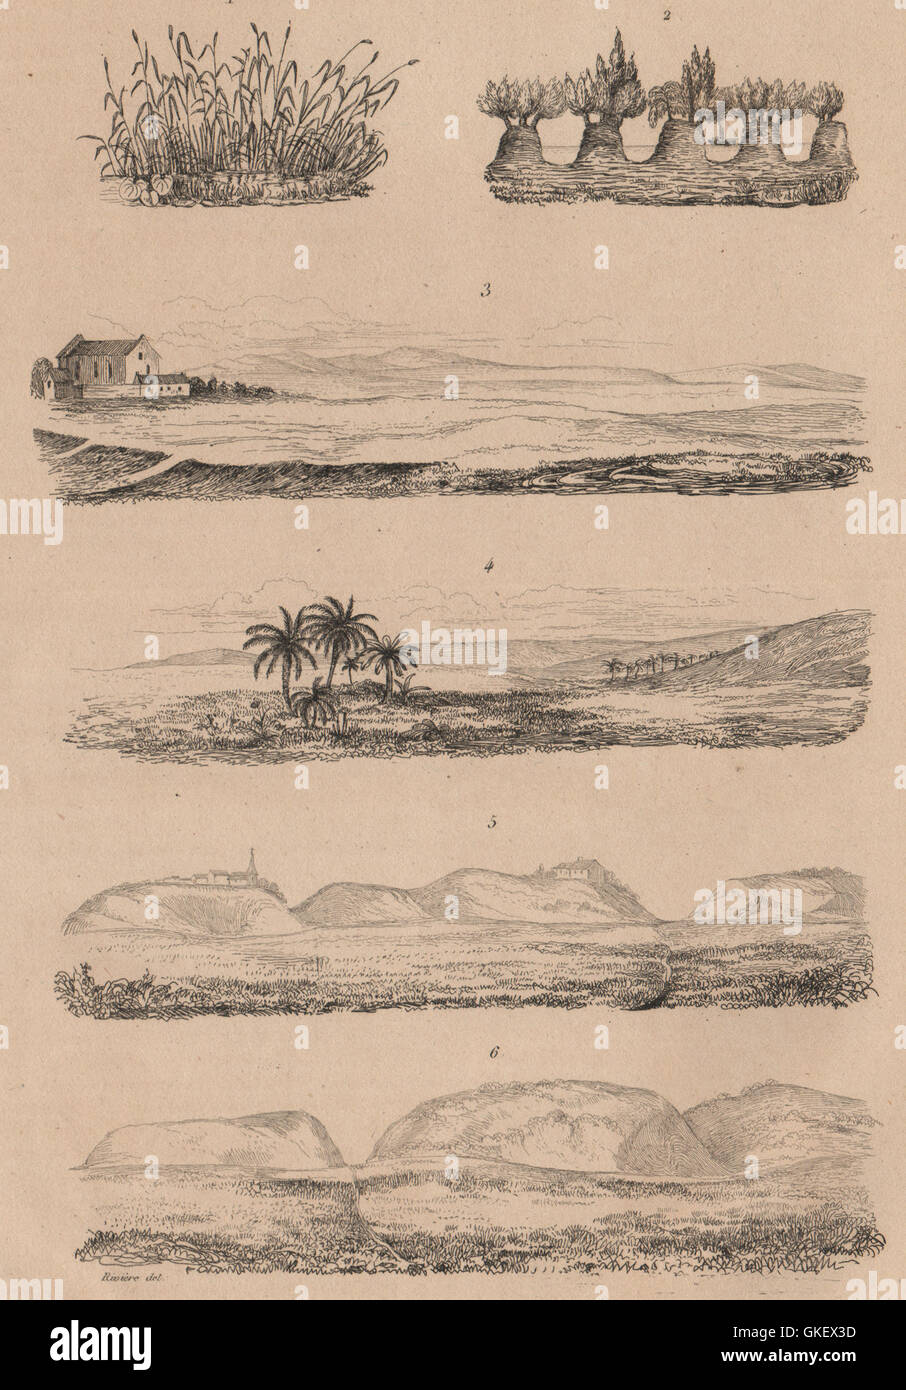 SEASCAPES: Plages. Beaches. Coastal scenery. III, antique print 1834 - Stock Image